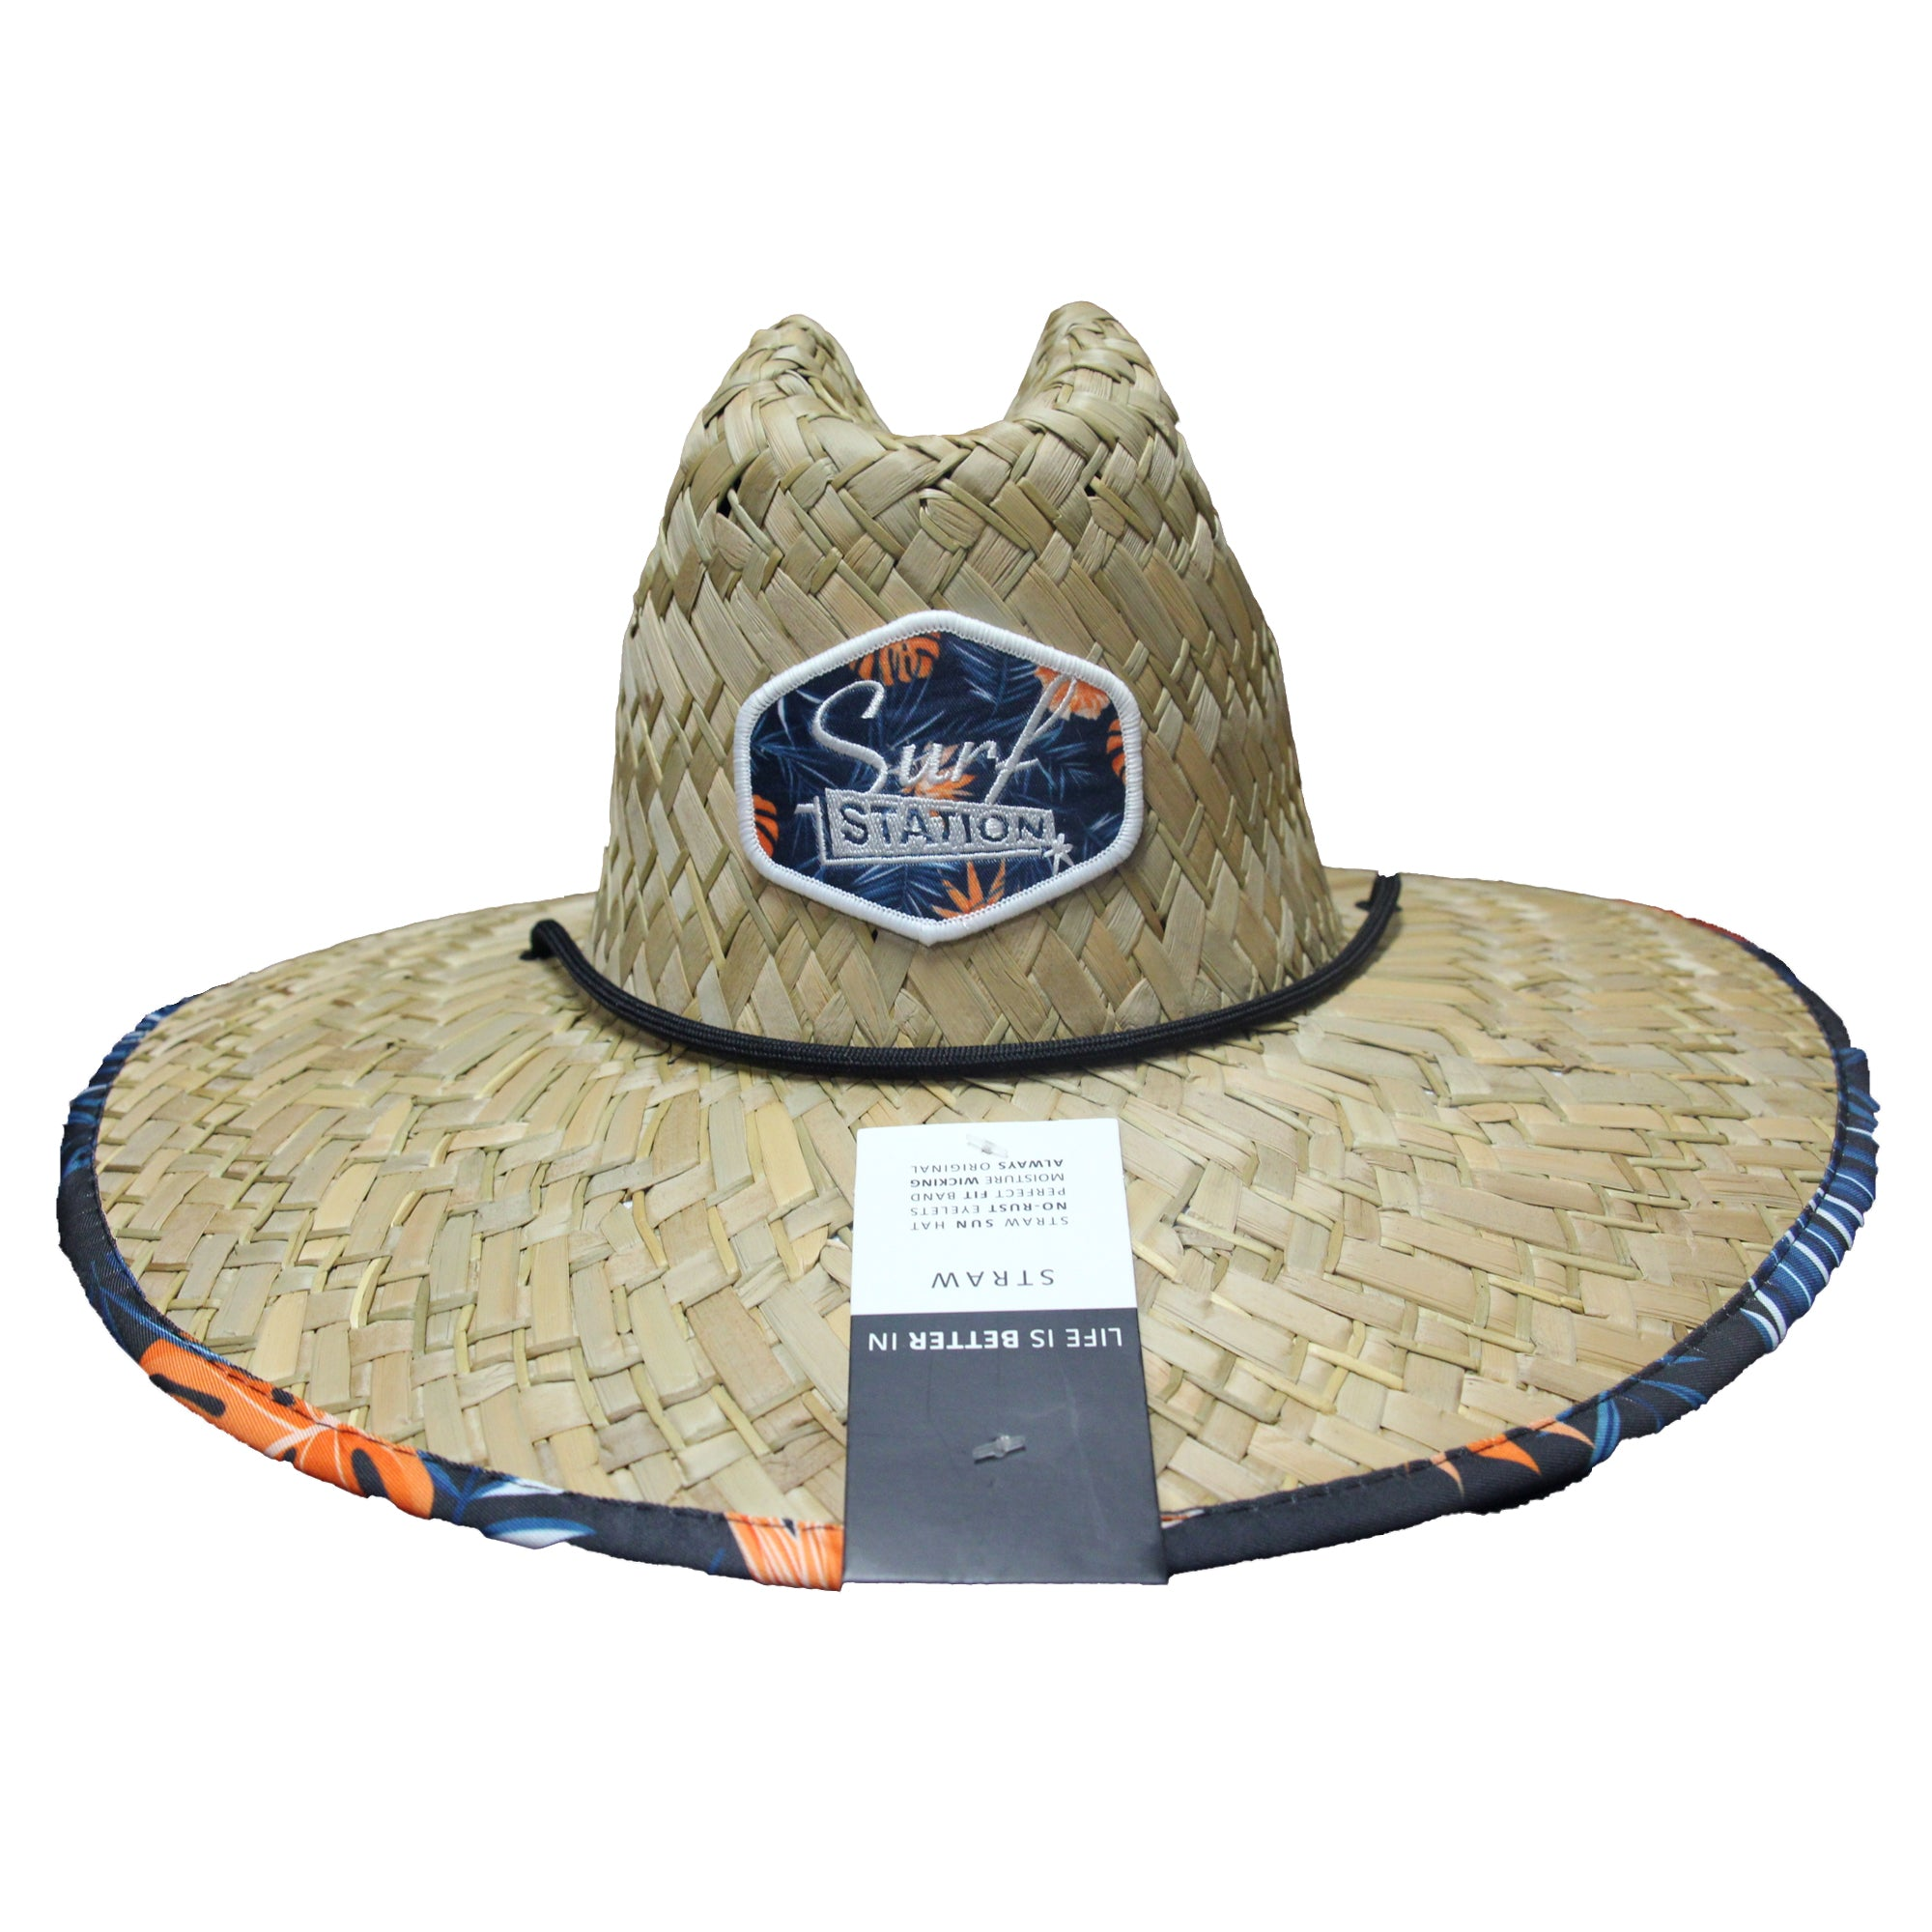 Surf Station Siesta Straw Lifeguard Hat